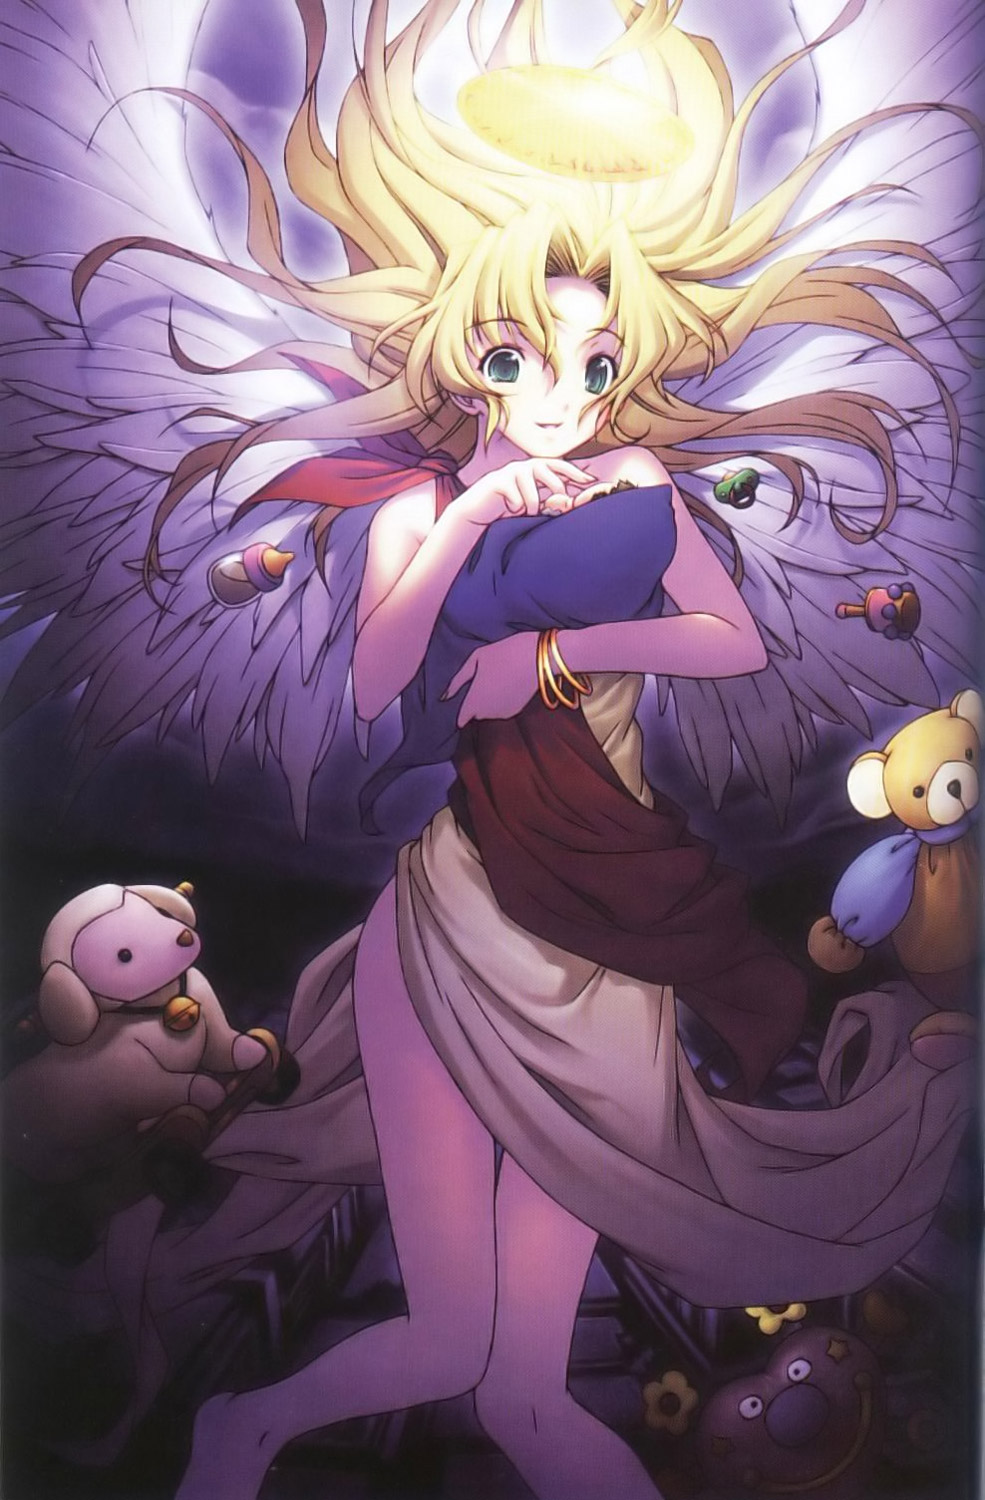 Angel and devil encyclopedia: dark and light side books image by Various Artists